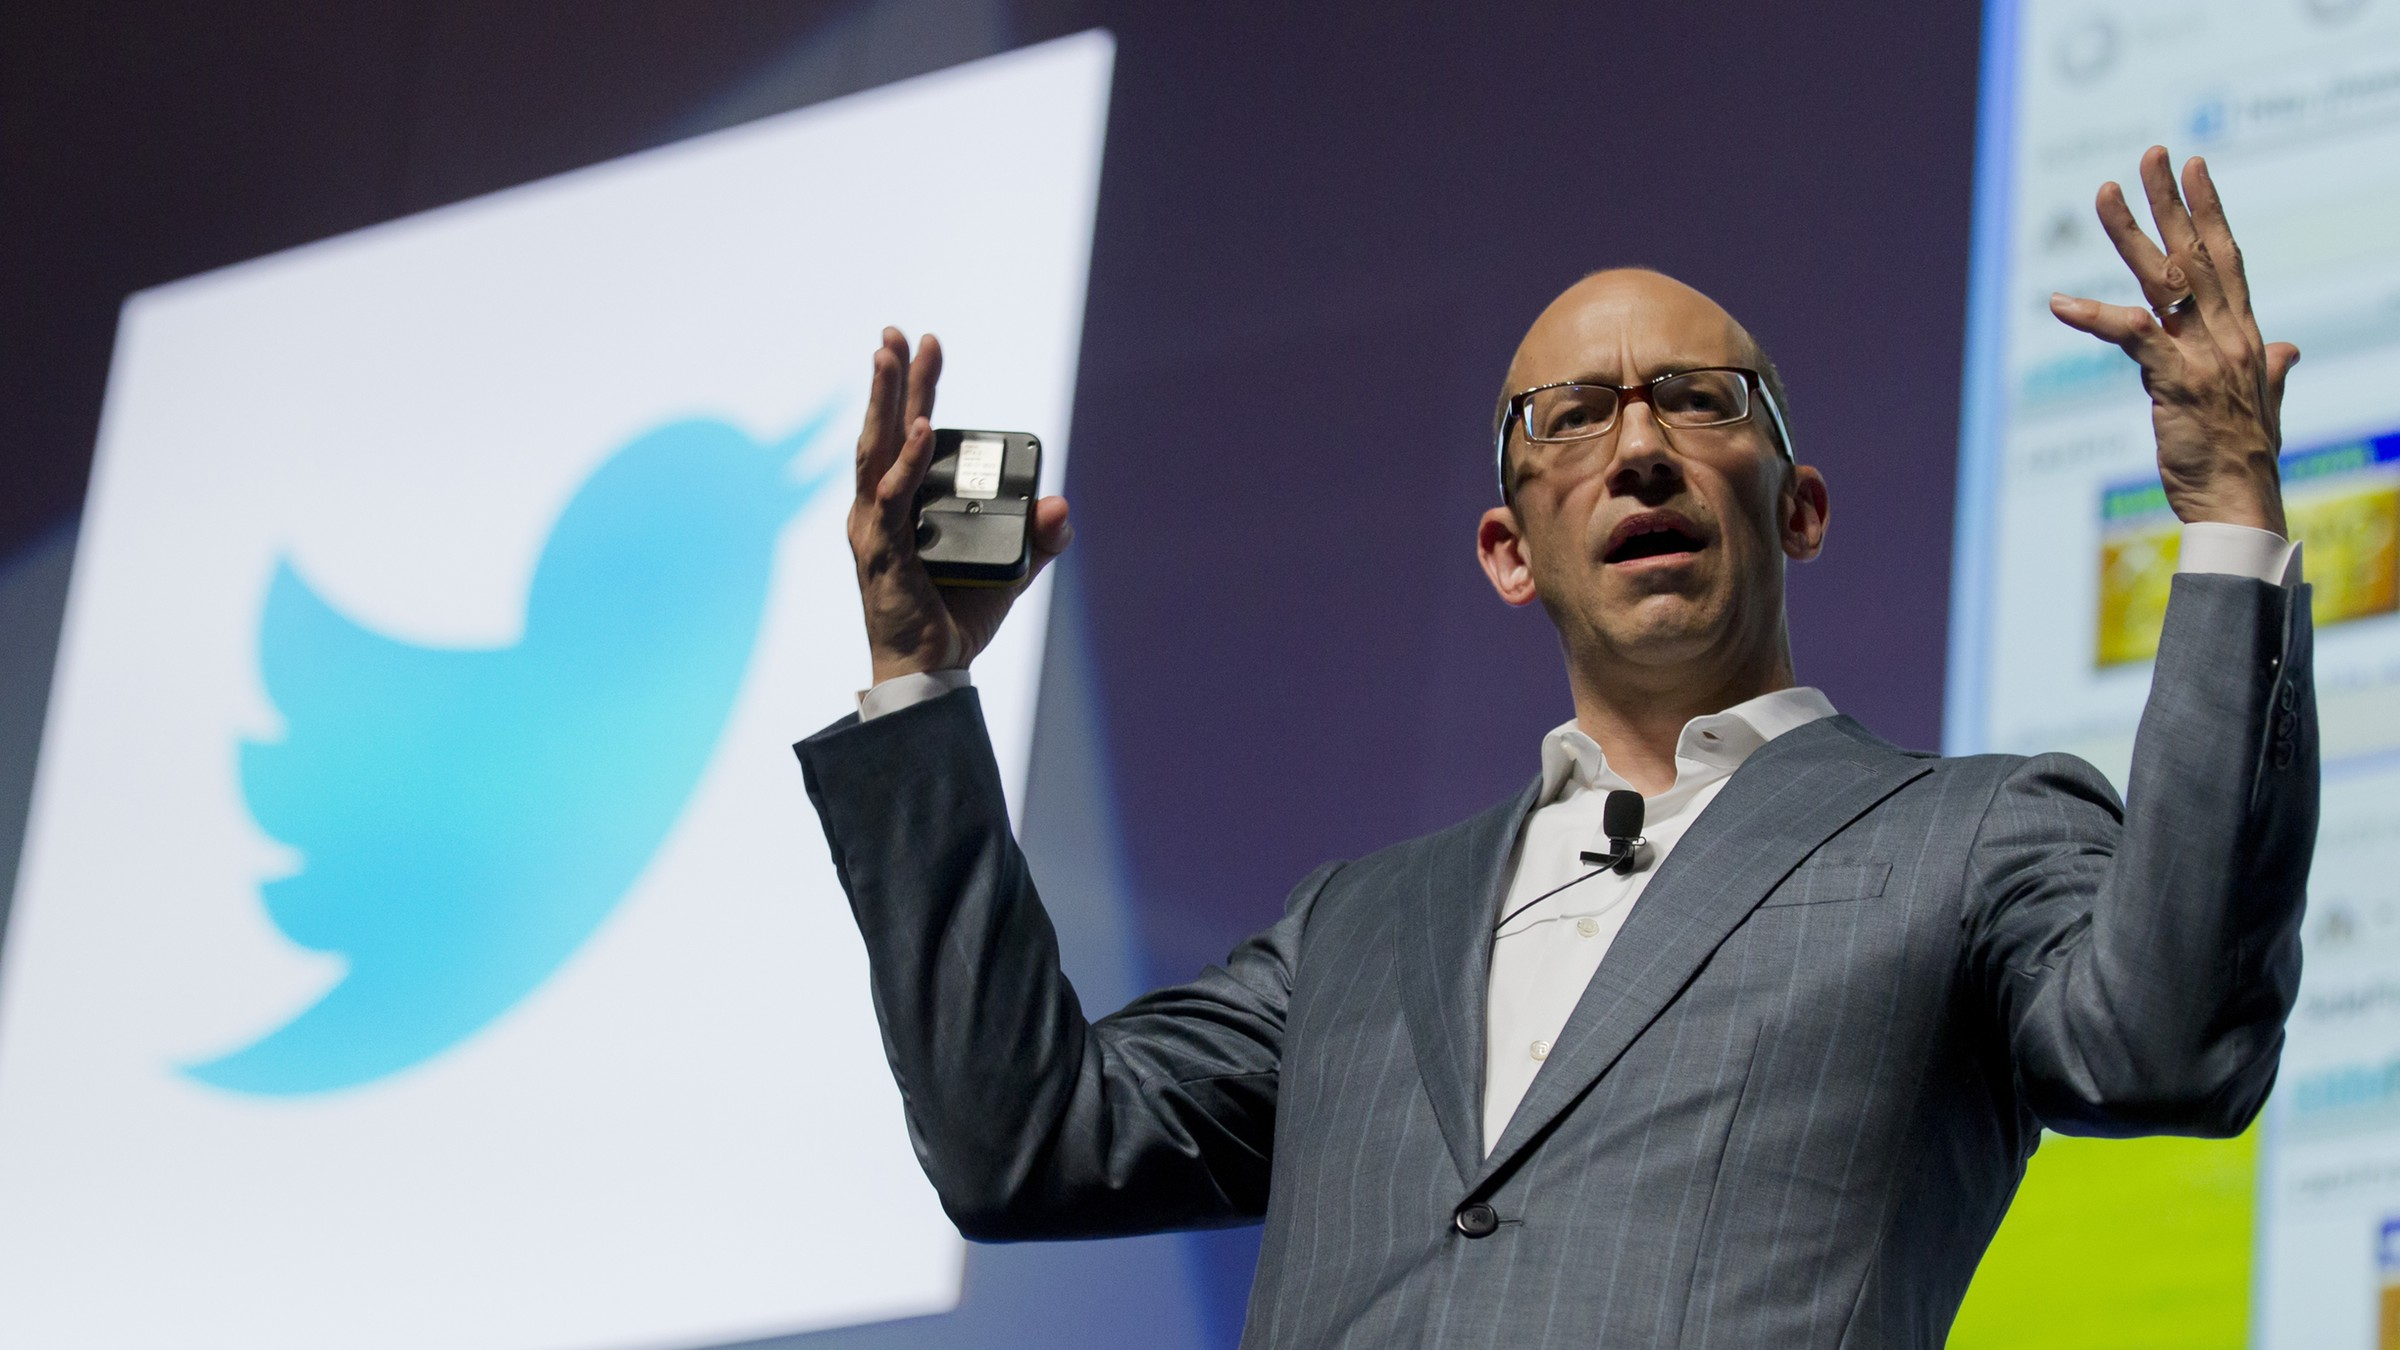 Twitter CEO Dick Costolo at Cannes Lions